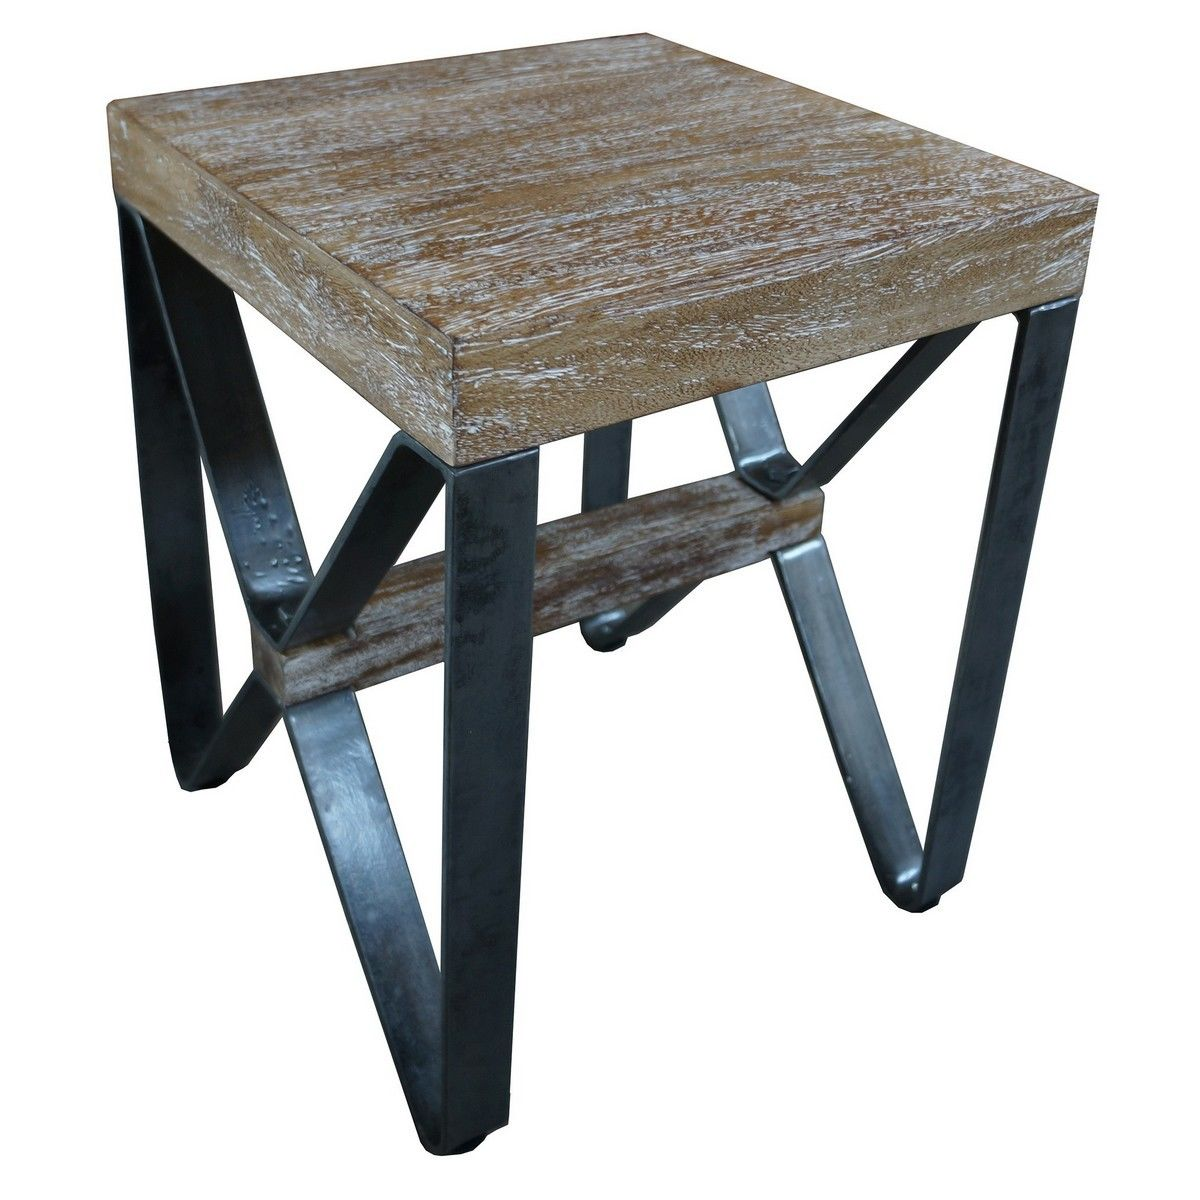 dark plans white round woodworking legs marblegold top wooden target rustic upcycled small gold side table black cleo pedestal emperor tablecloth gloss wood silver glass argos